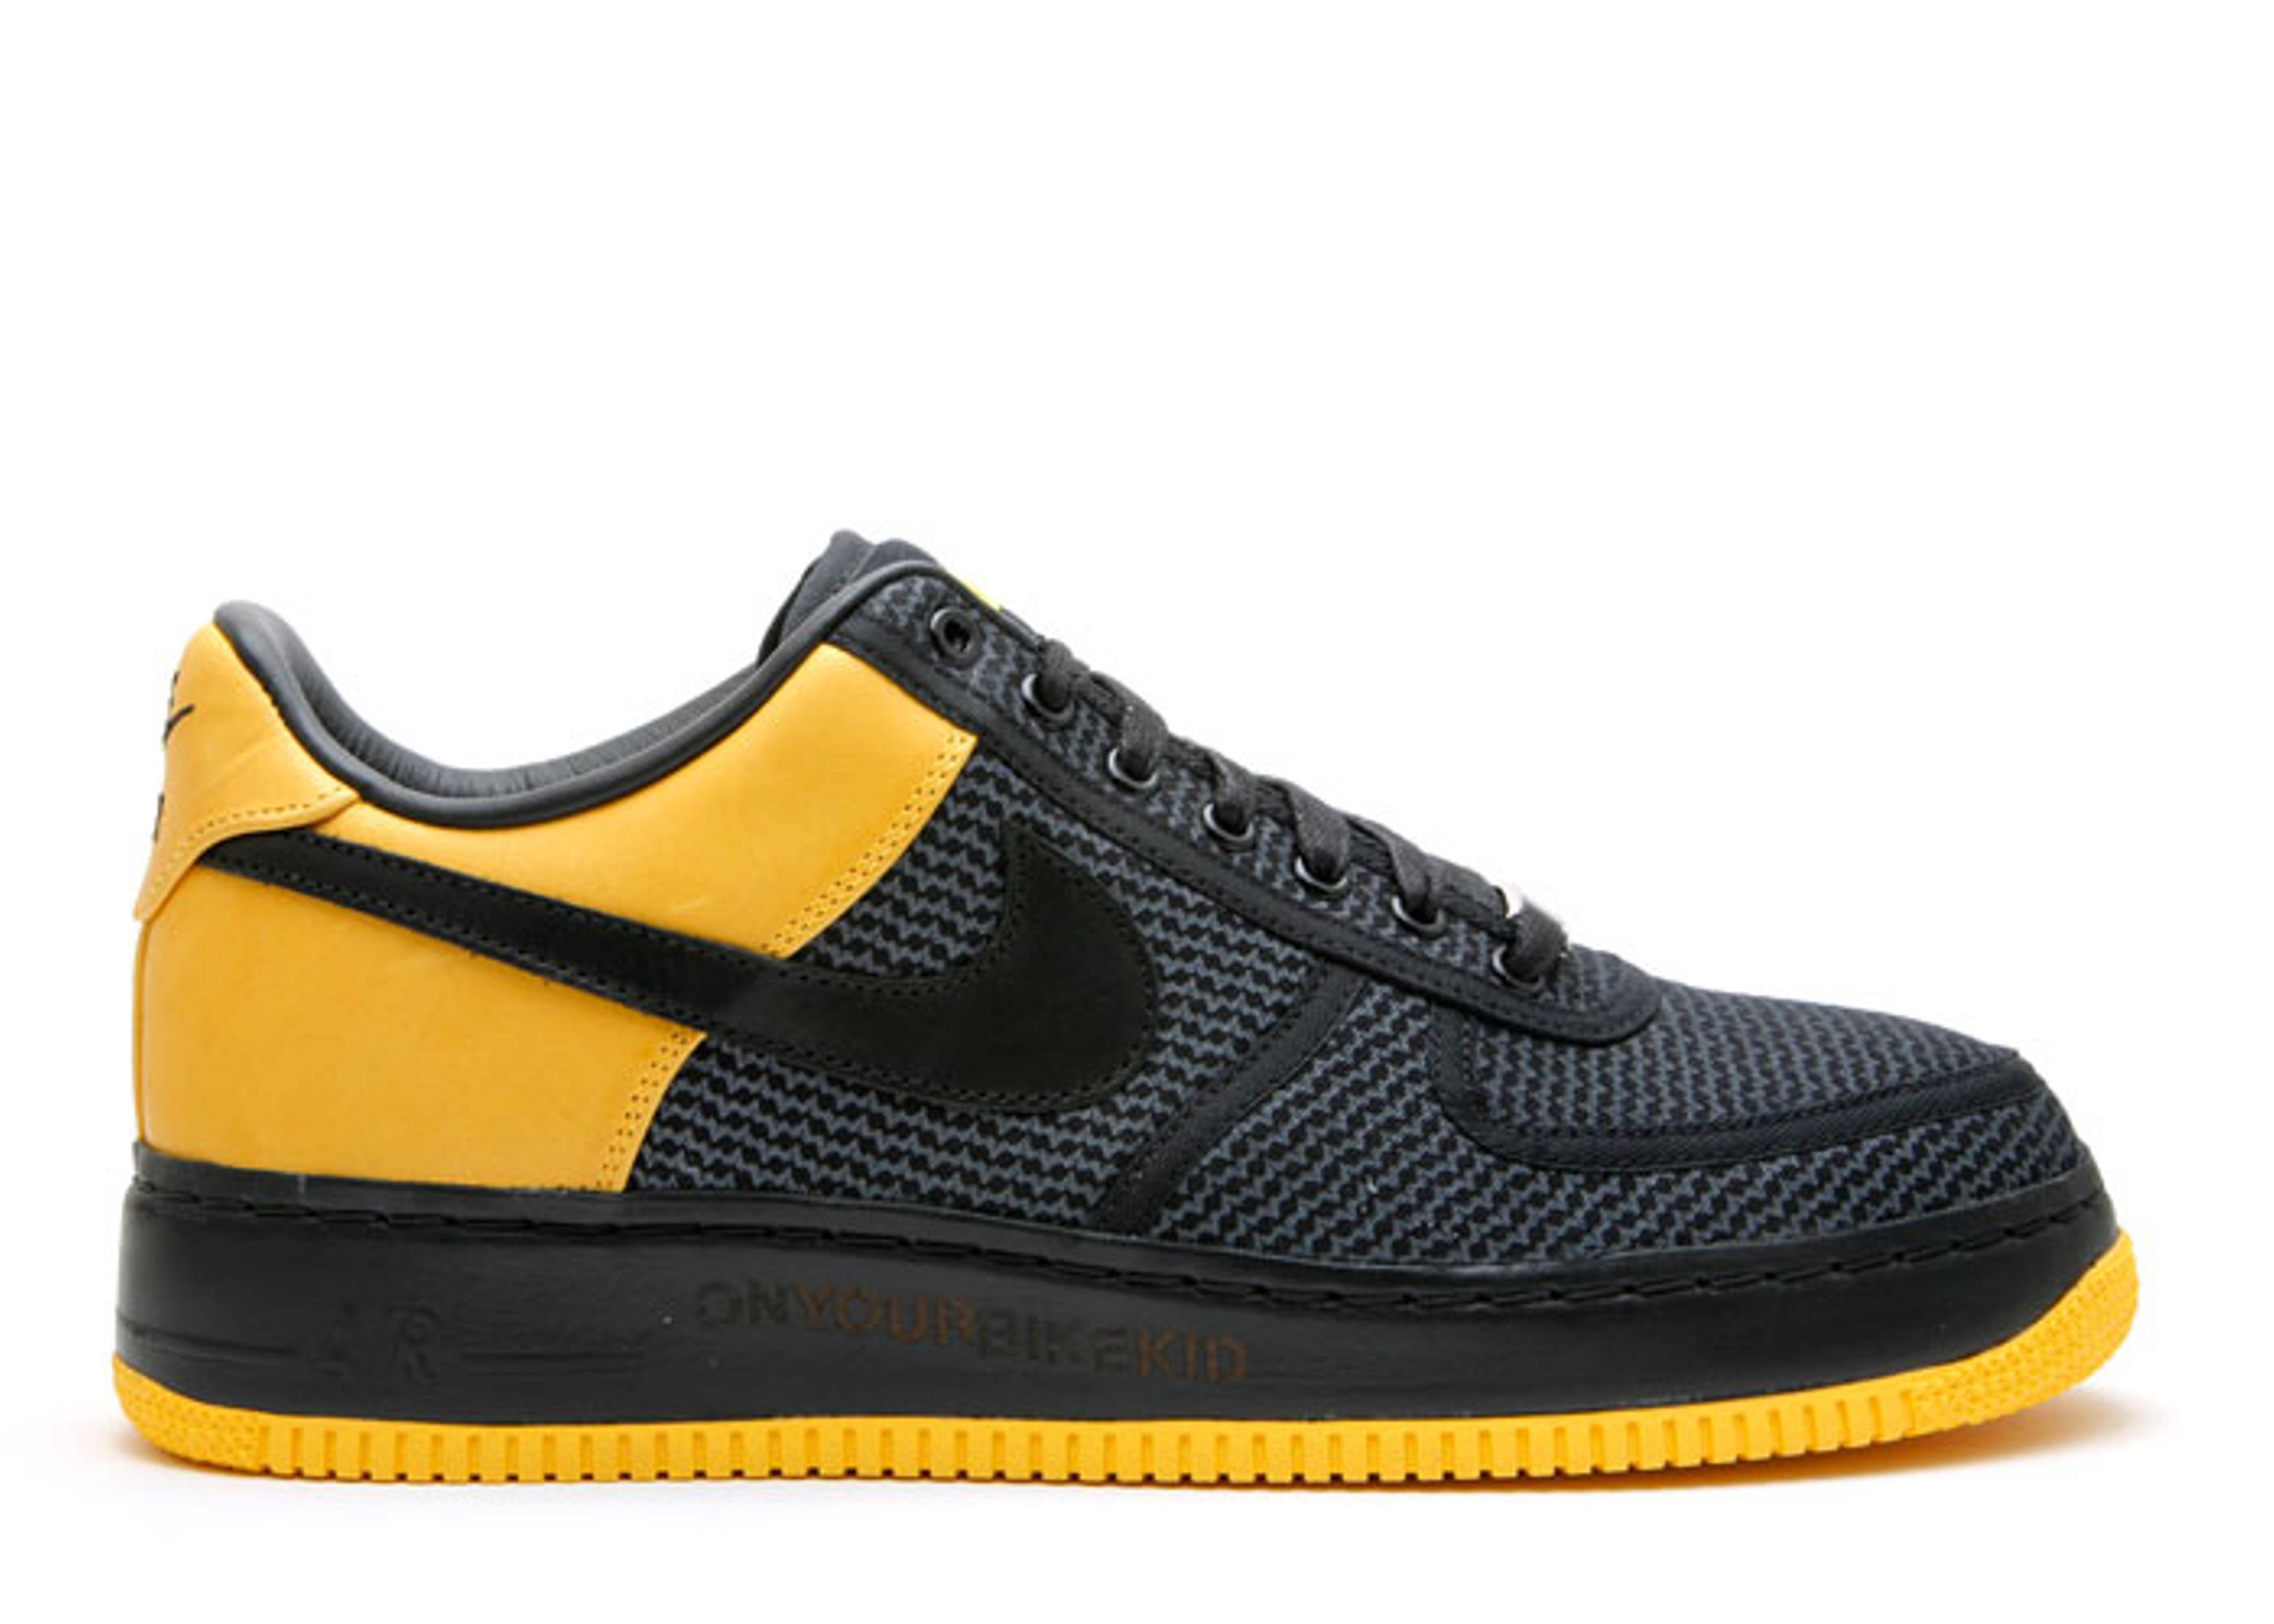 quality design 80f36 f6826 nike. air force 1 low supreme